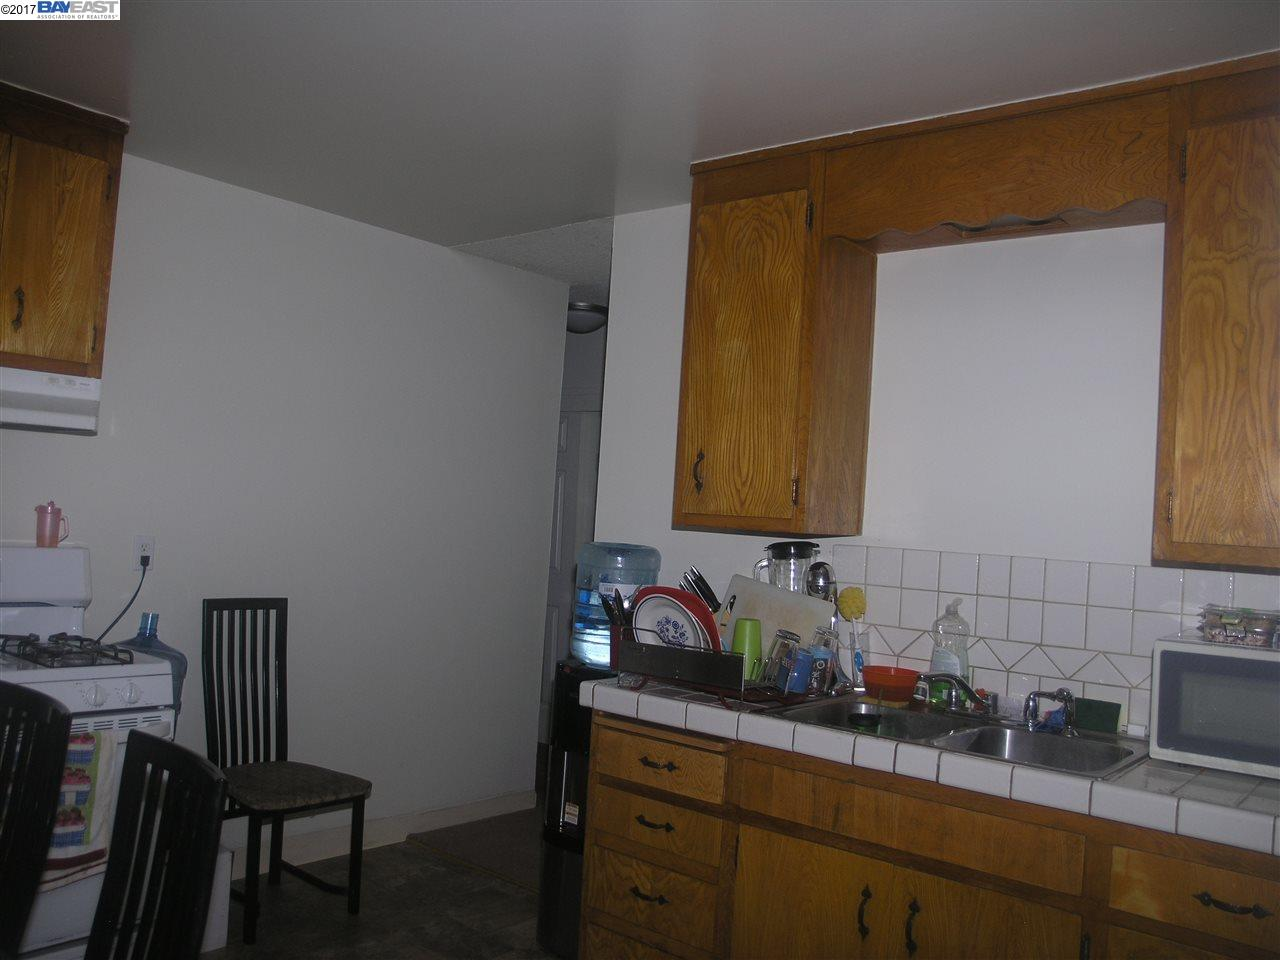 Additional photo for property listing at 33454 11TH Street  Union City, California 94587 United States